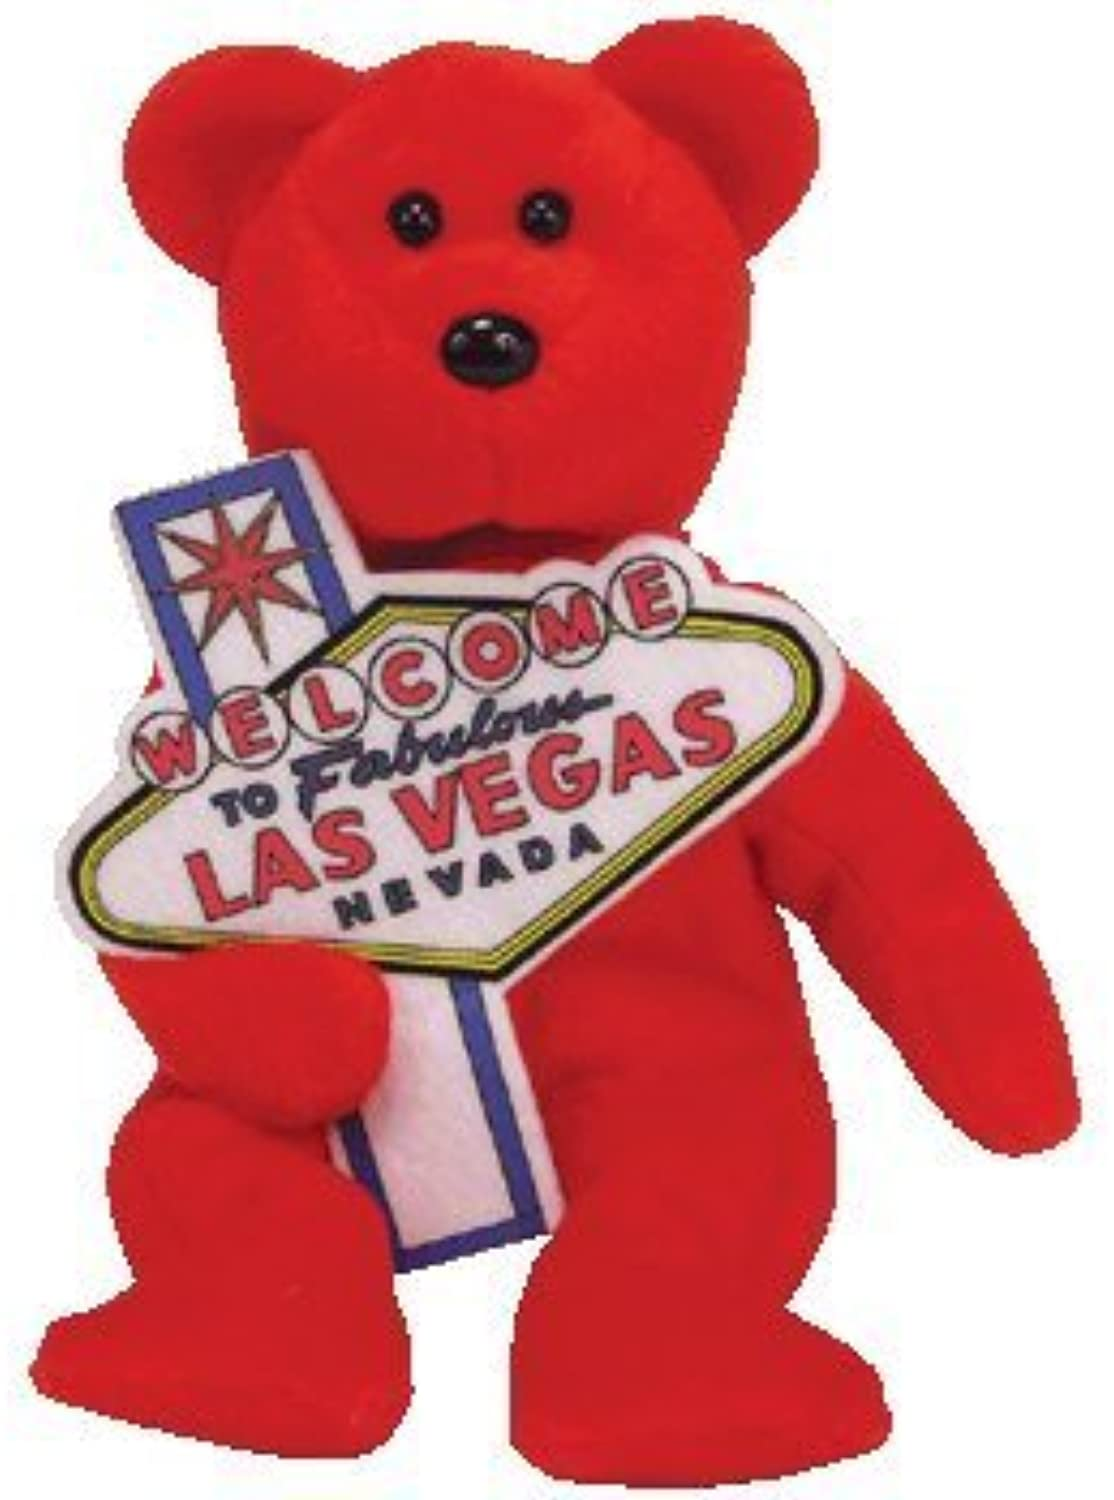 TY Aces (Las Vegas Exclusives) the Bear Beanie Baby by TYUS STATE CITY BEANIES